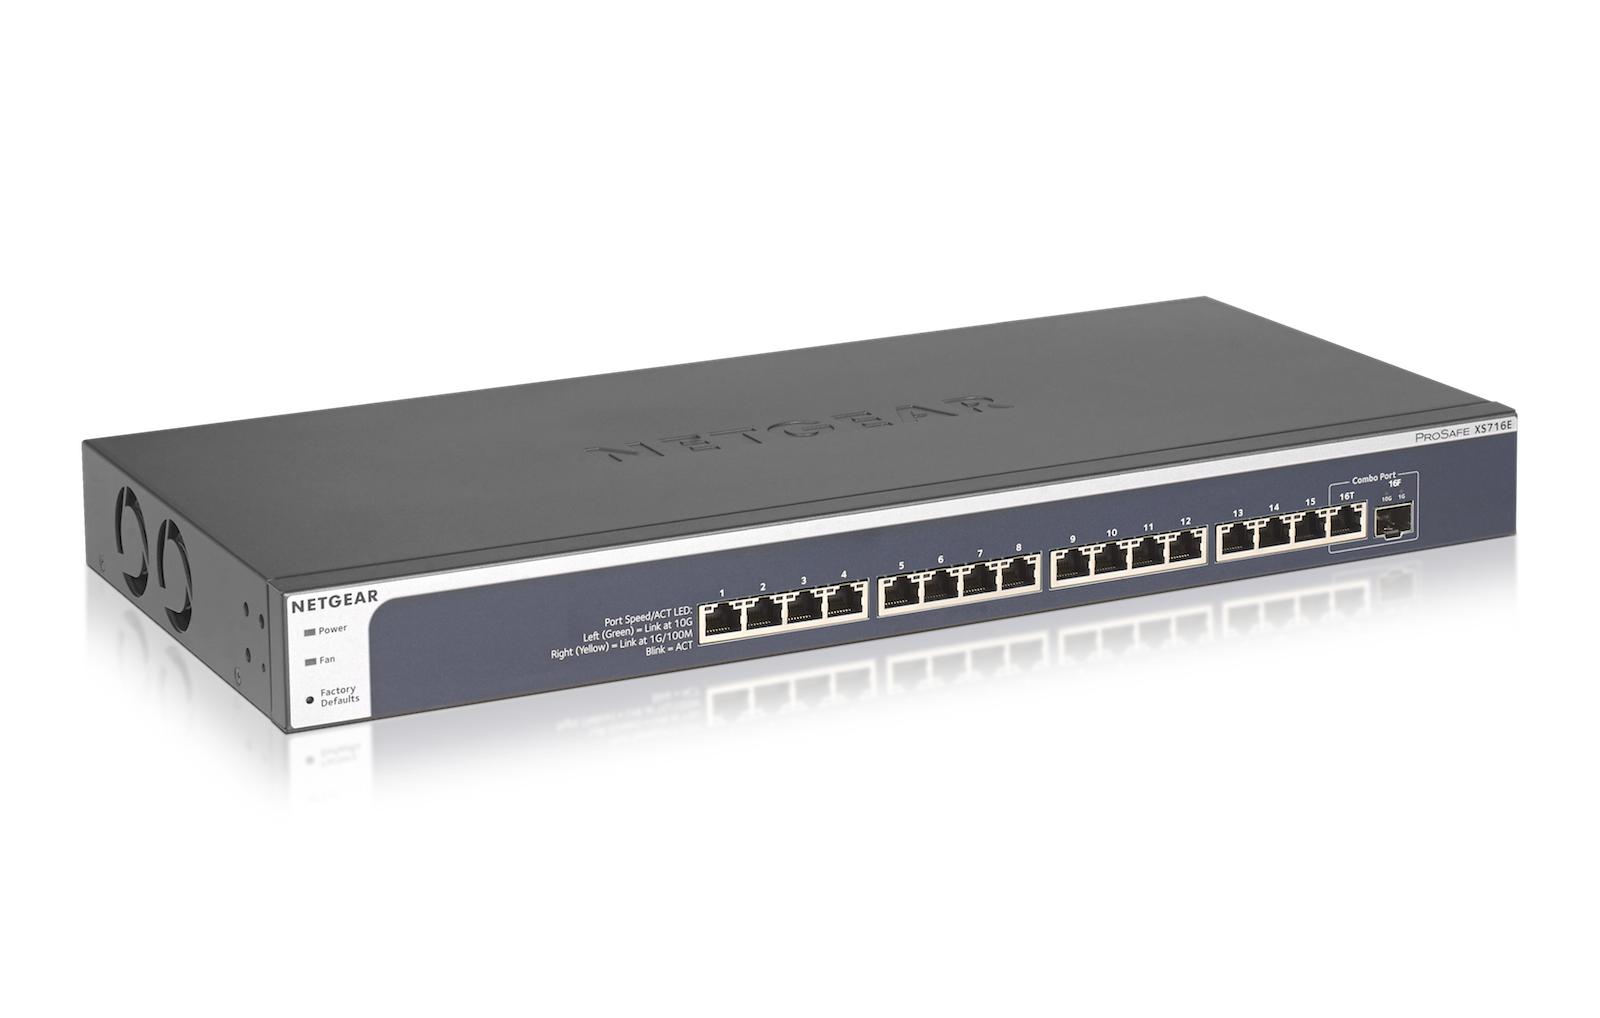 XS708Ev2 and XS716E: Netgears neue 10-Gigabit-Ethernet-Switches ab 700 Euro - XS716E (Bild: Netgear)